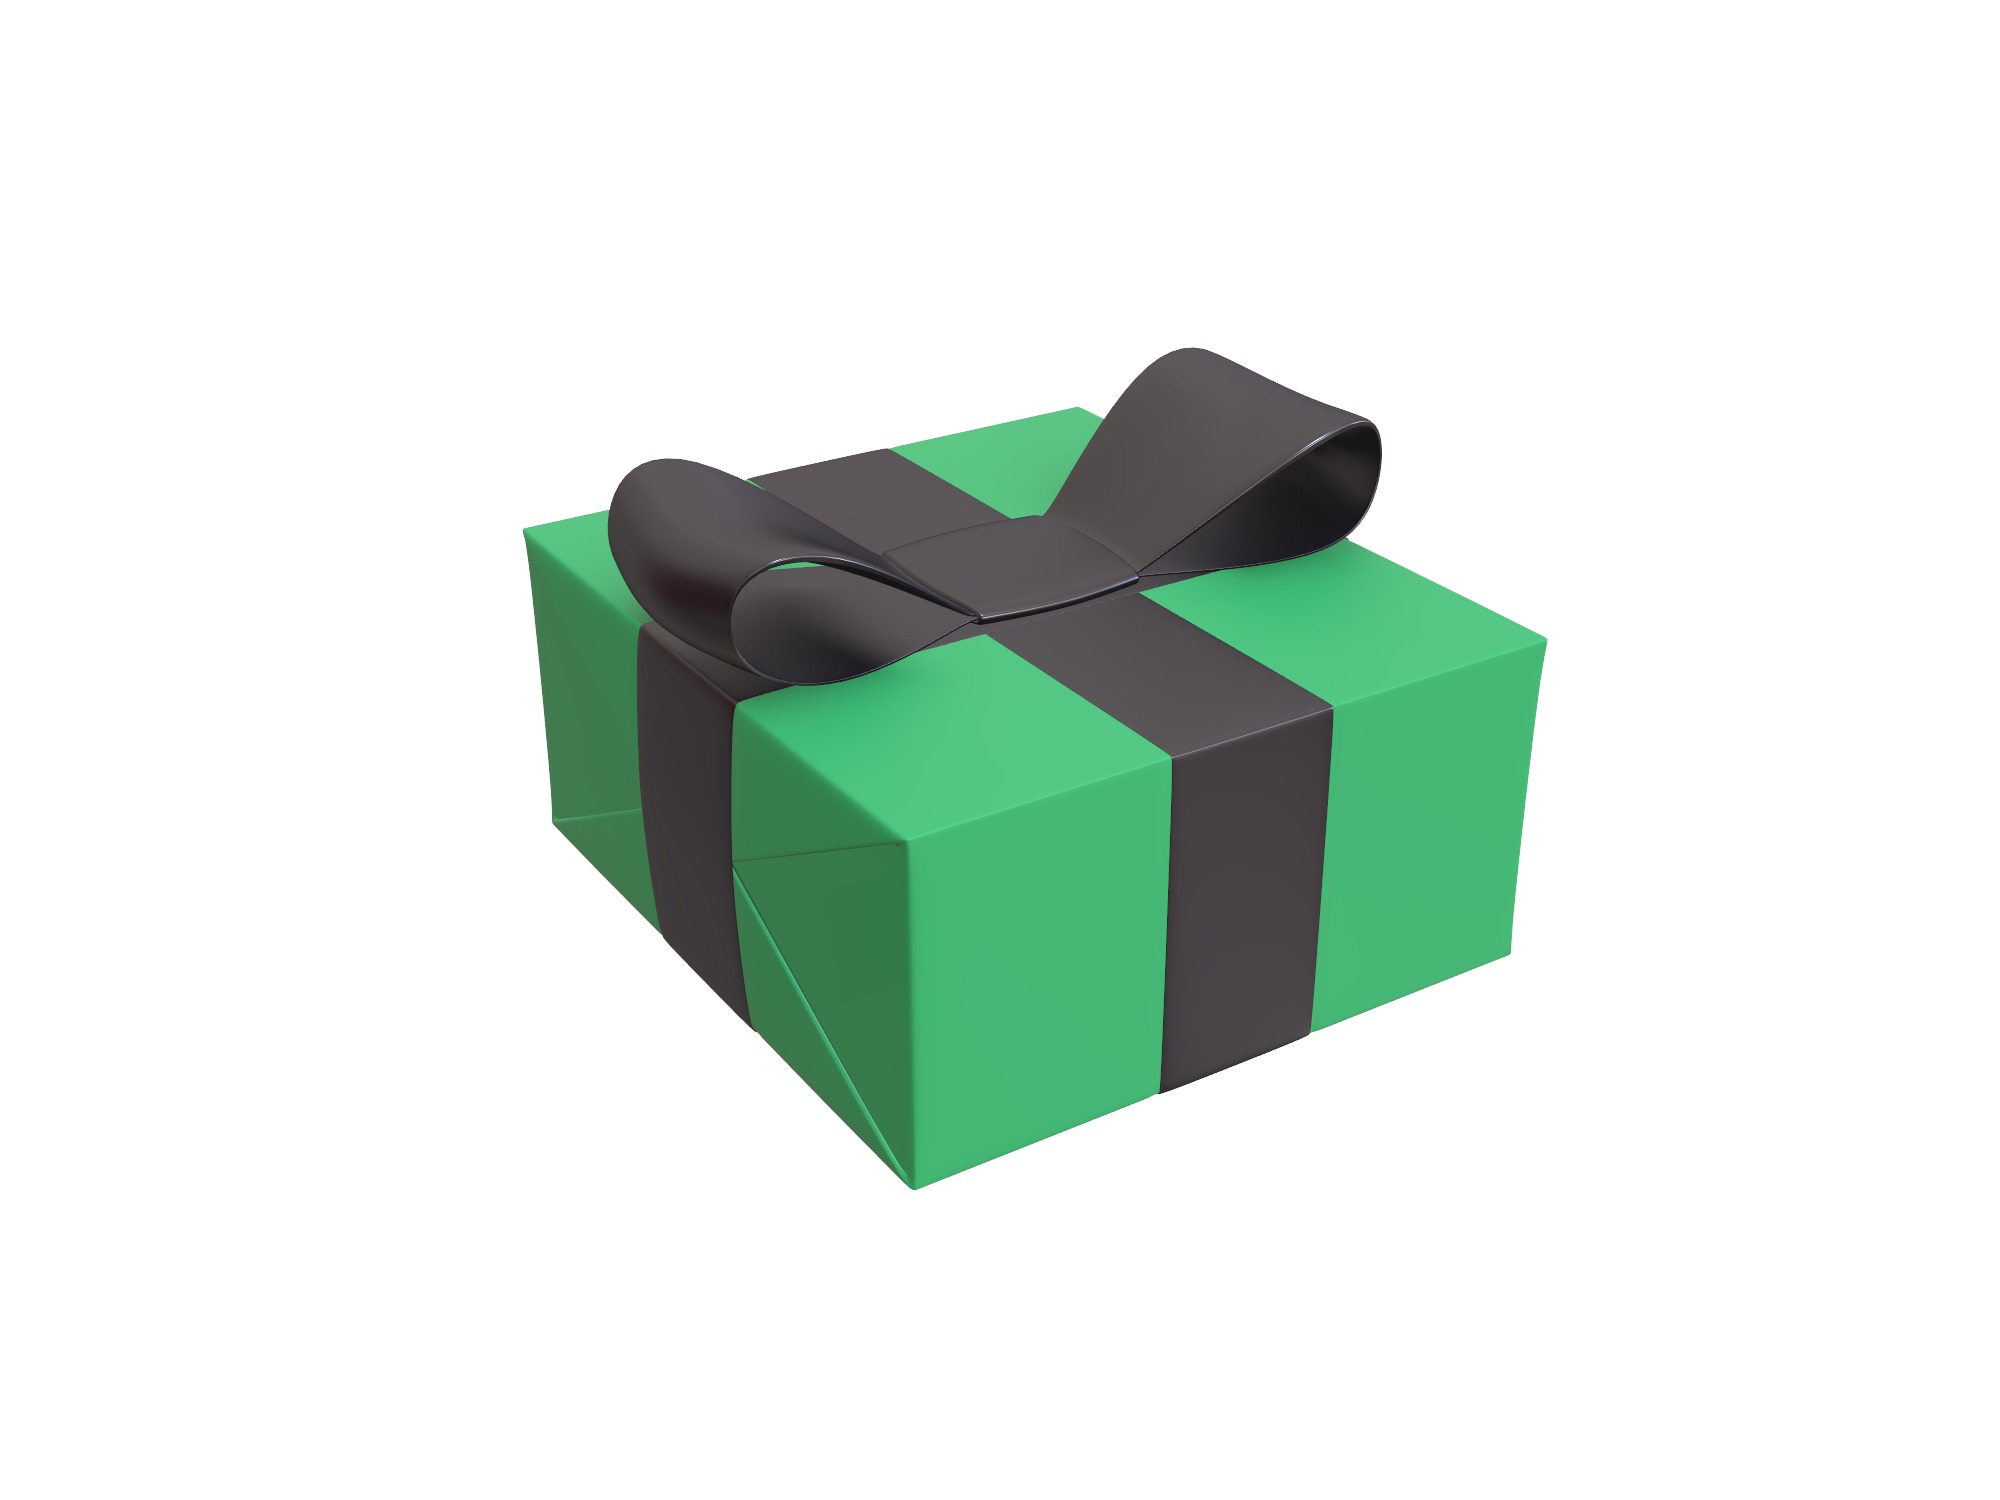 Gift box - 3D design by Vectary assets Jun 4, 2018